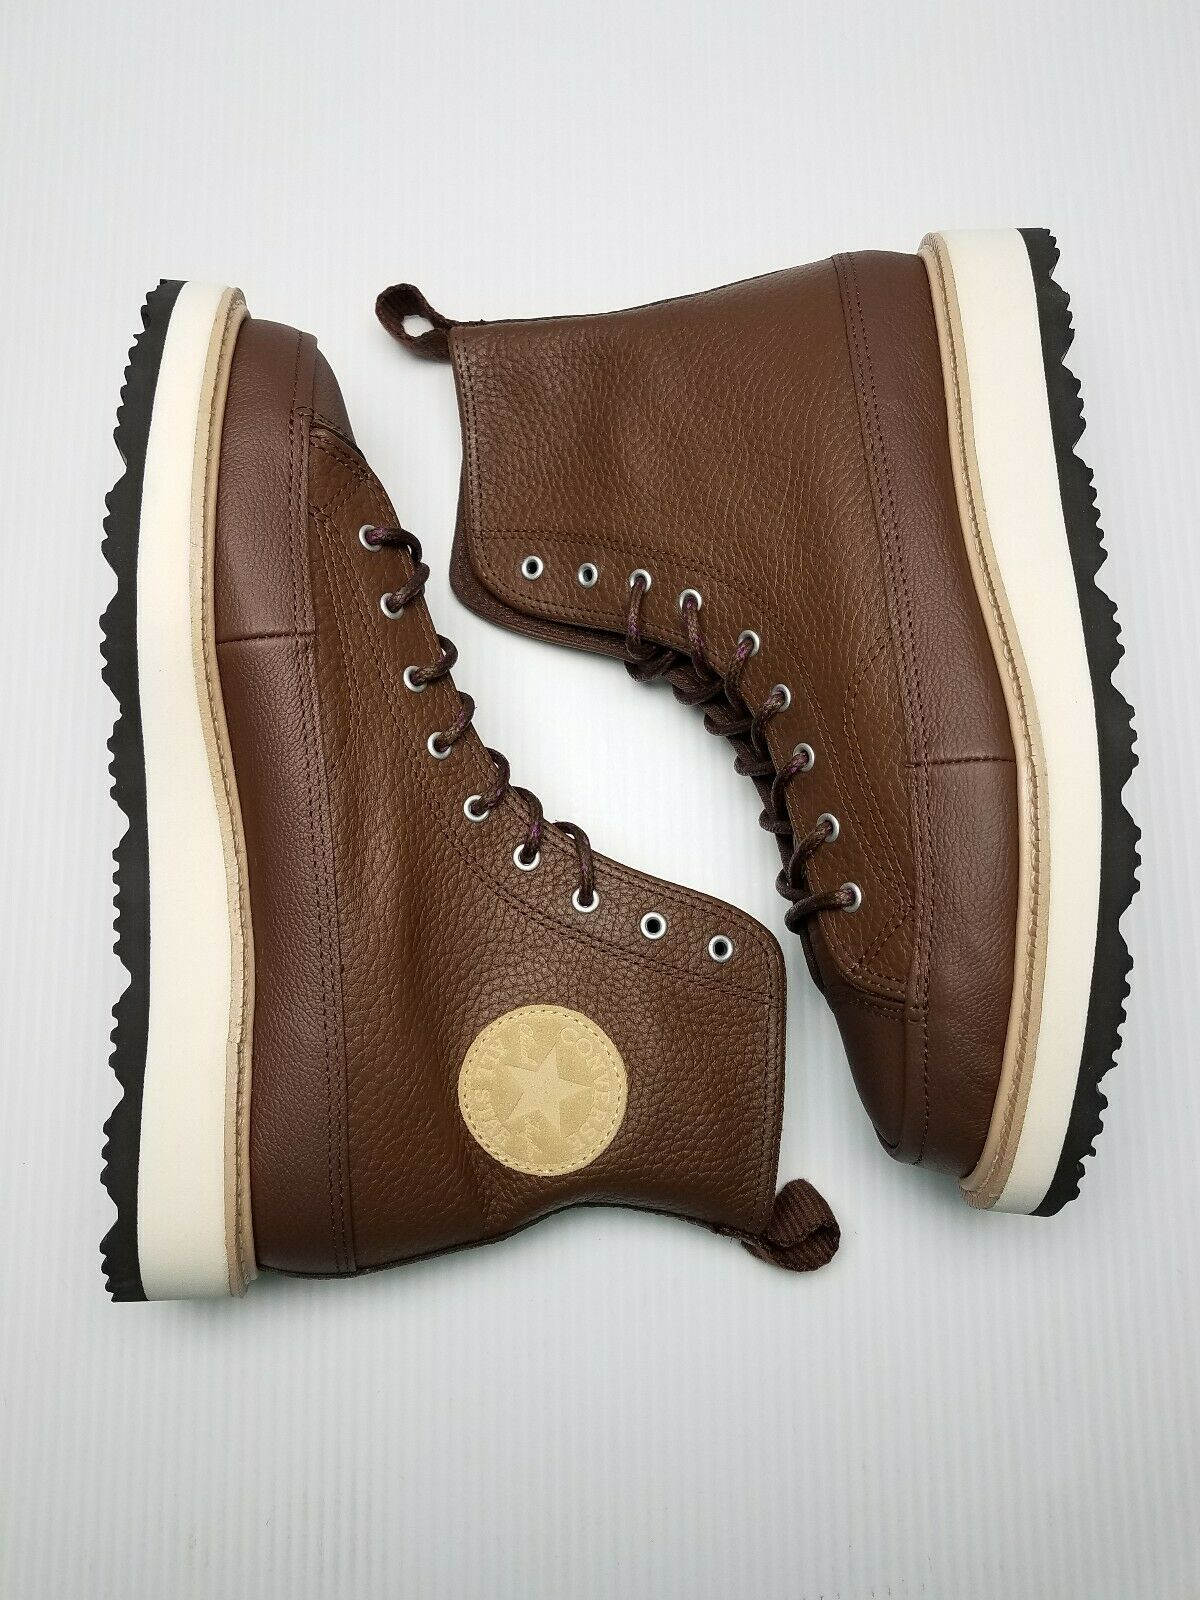 Converse CT Crafted Boot HI Men Size 7.5 Chocolate Leather 162354C Chuck Taylor